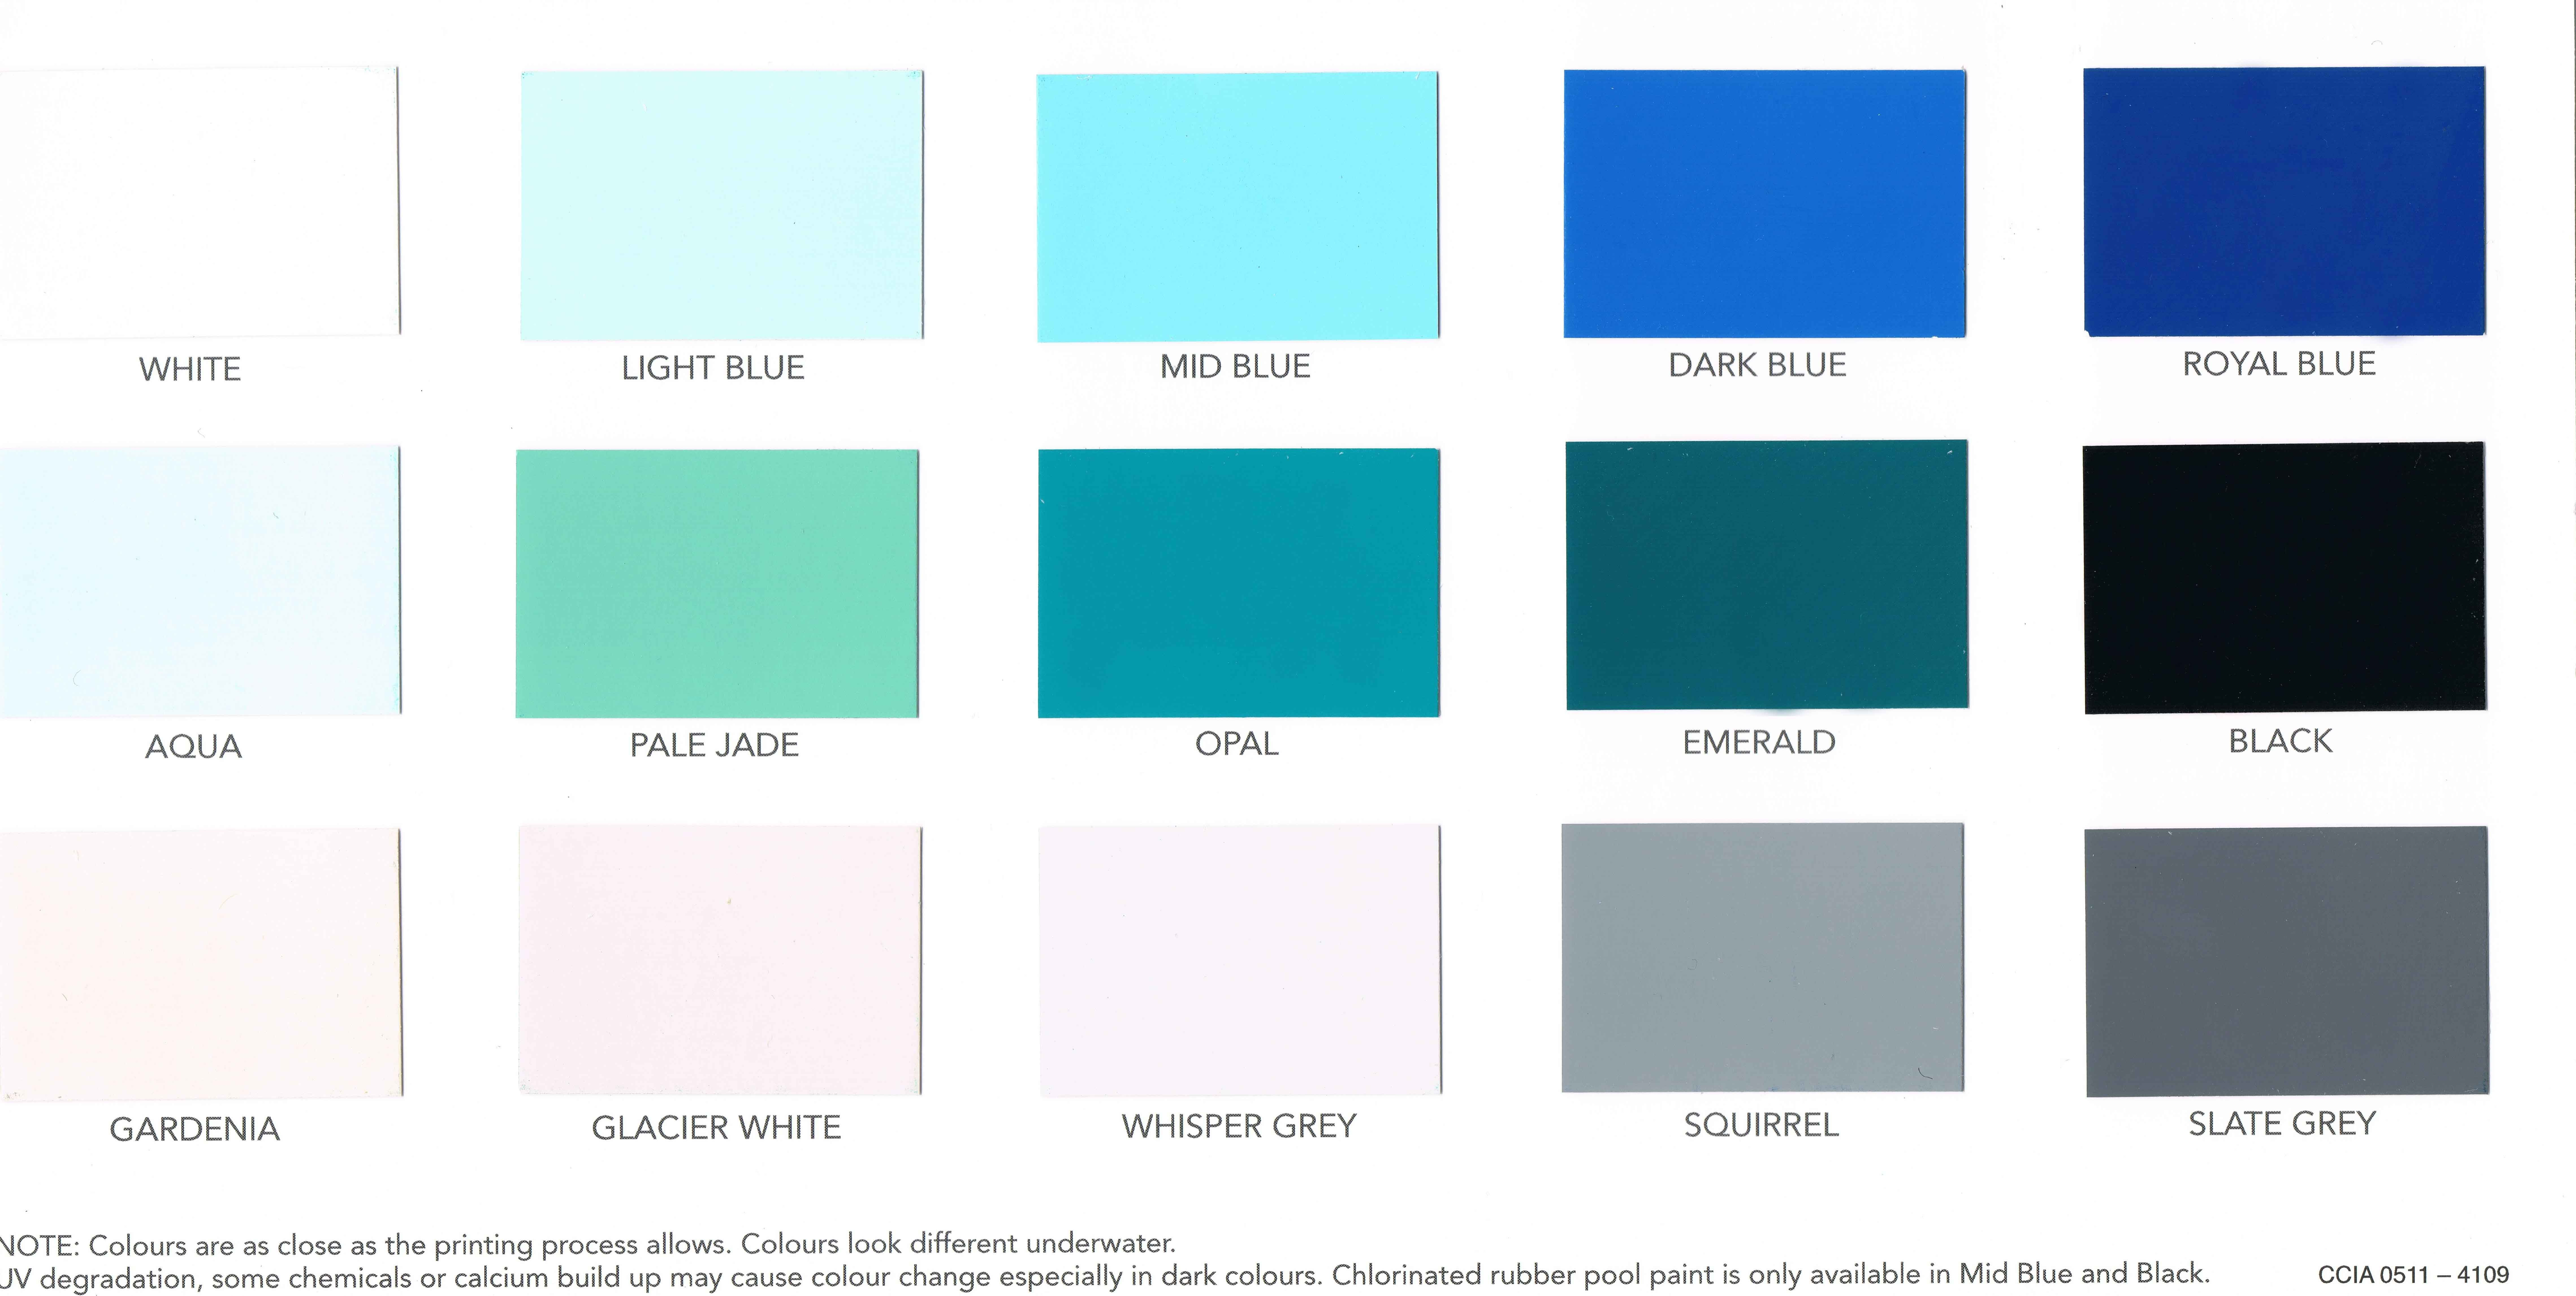 Specialist Pool Services Ltd - Pool Painting